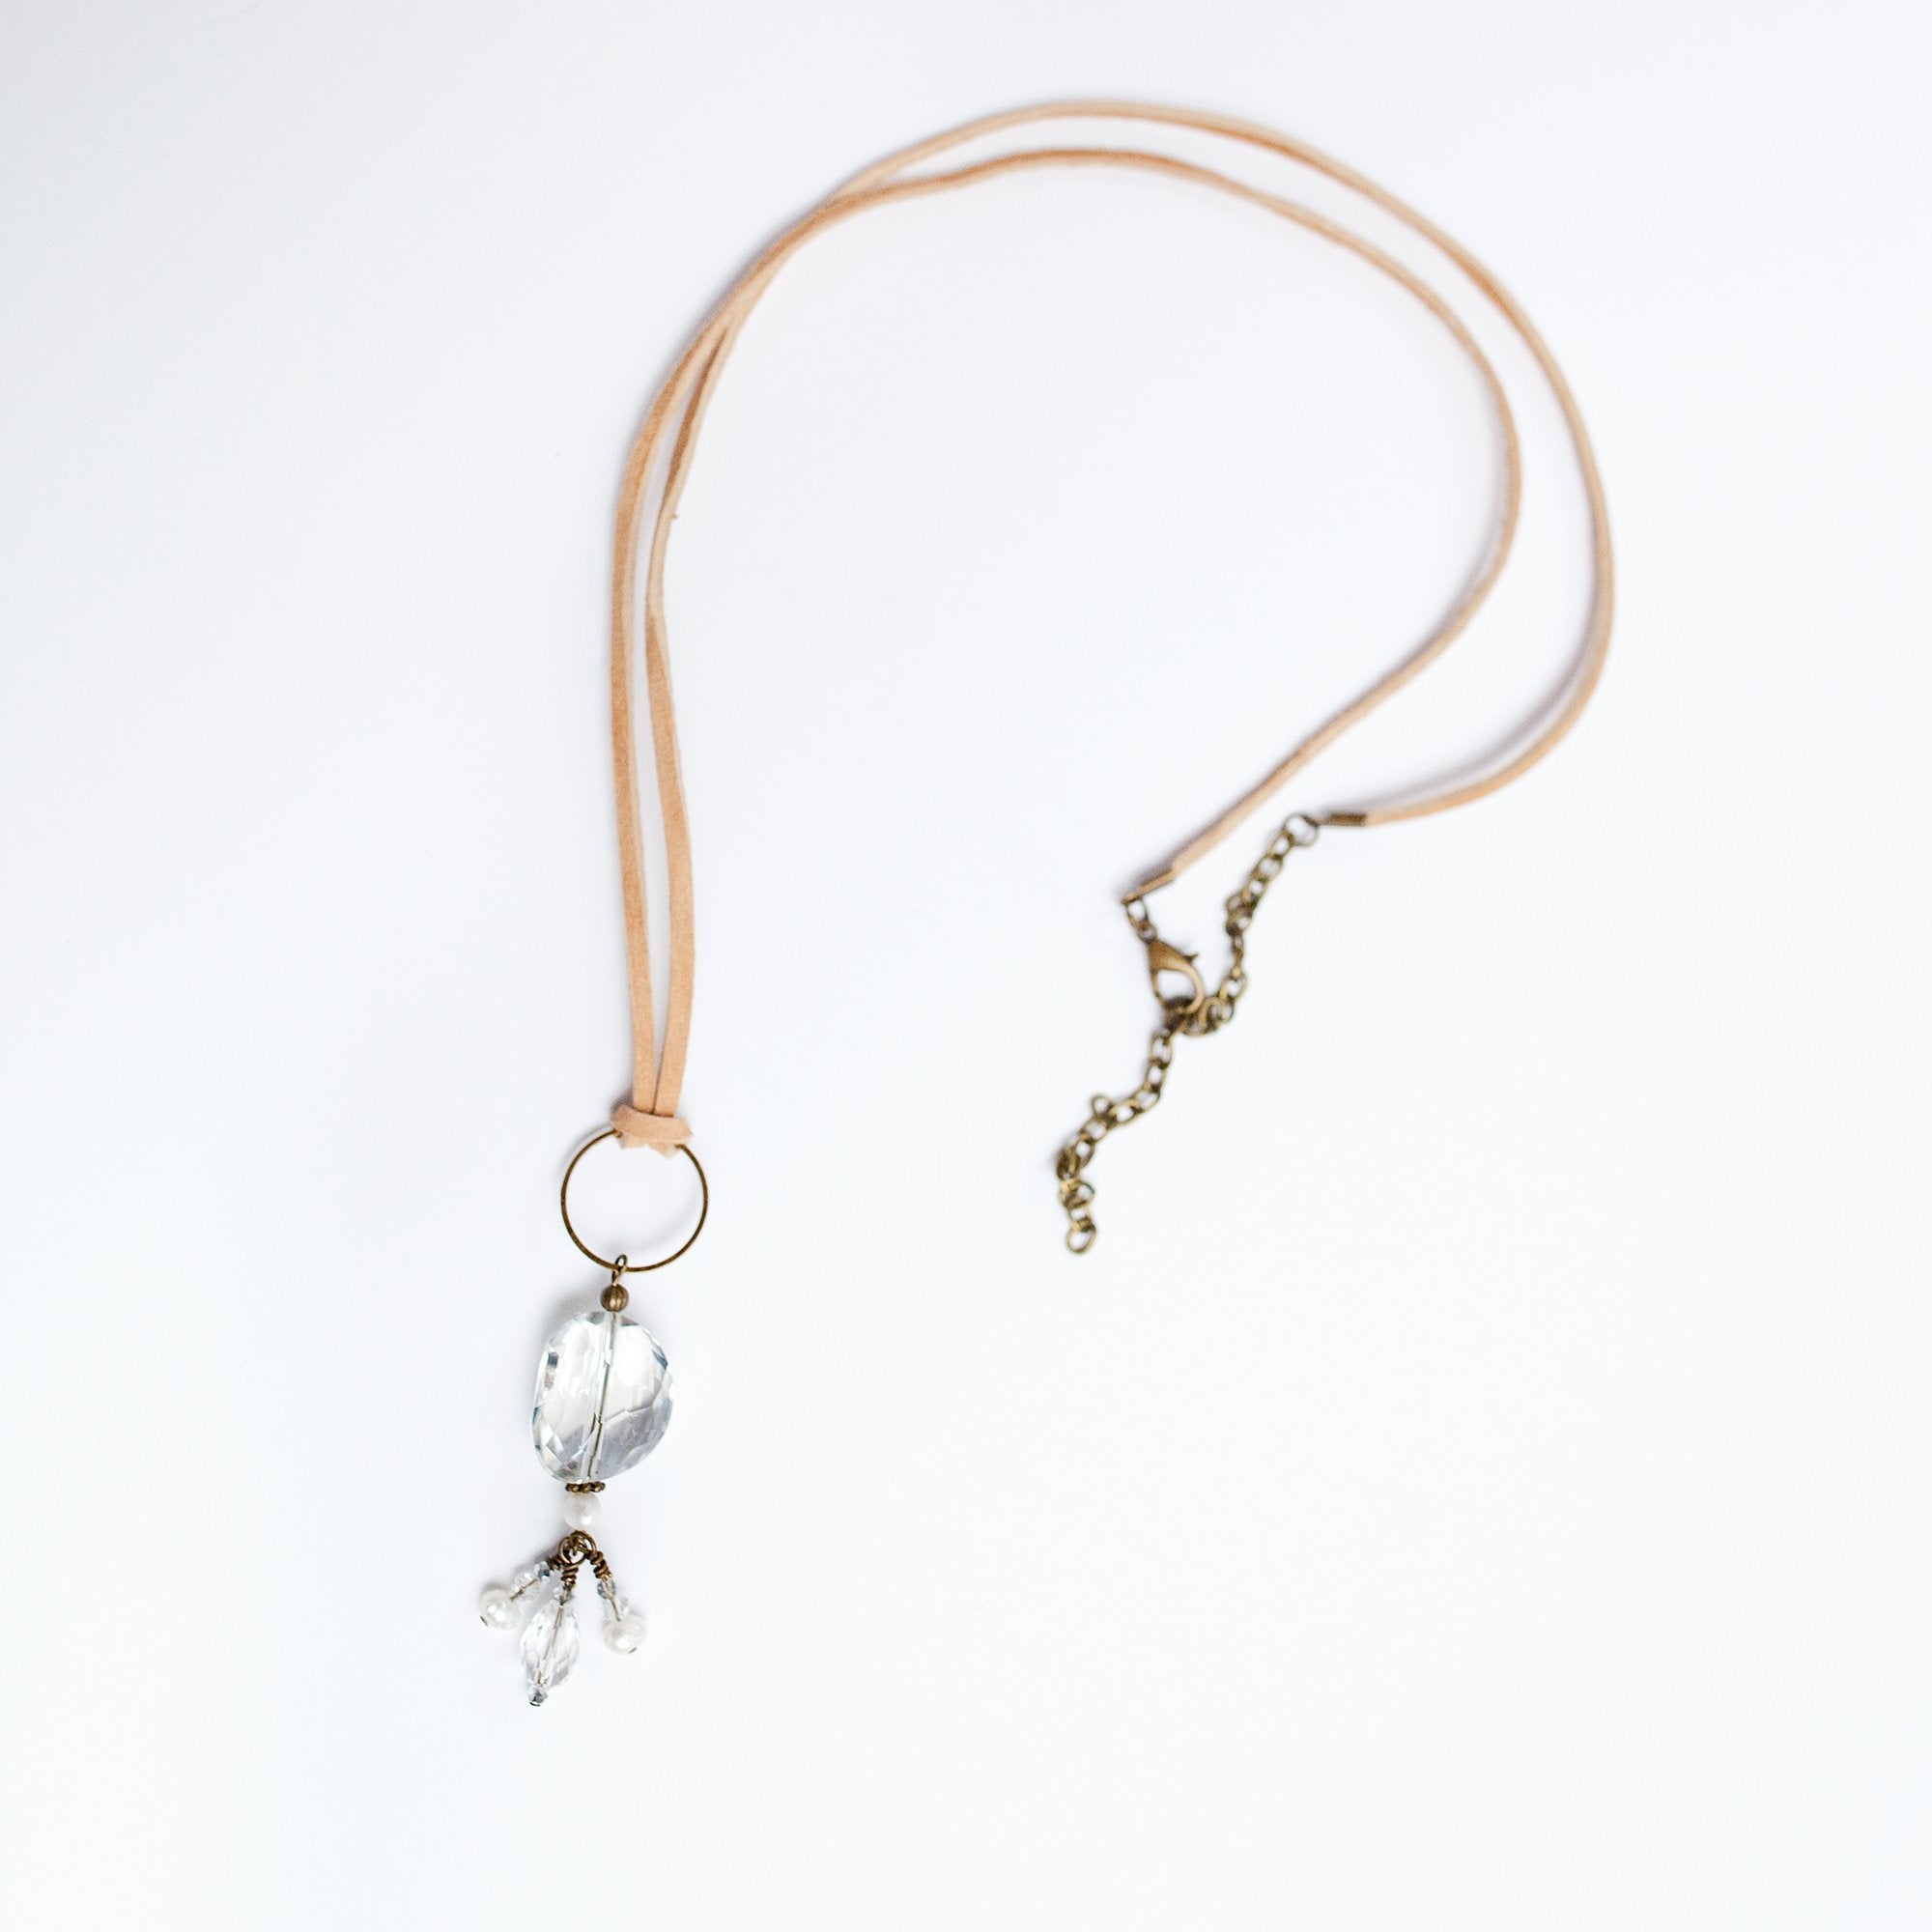 Knotted Sand Suede Necklace with Glass Pendant - Newport Edge